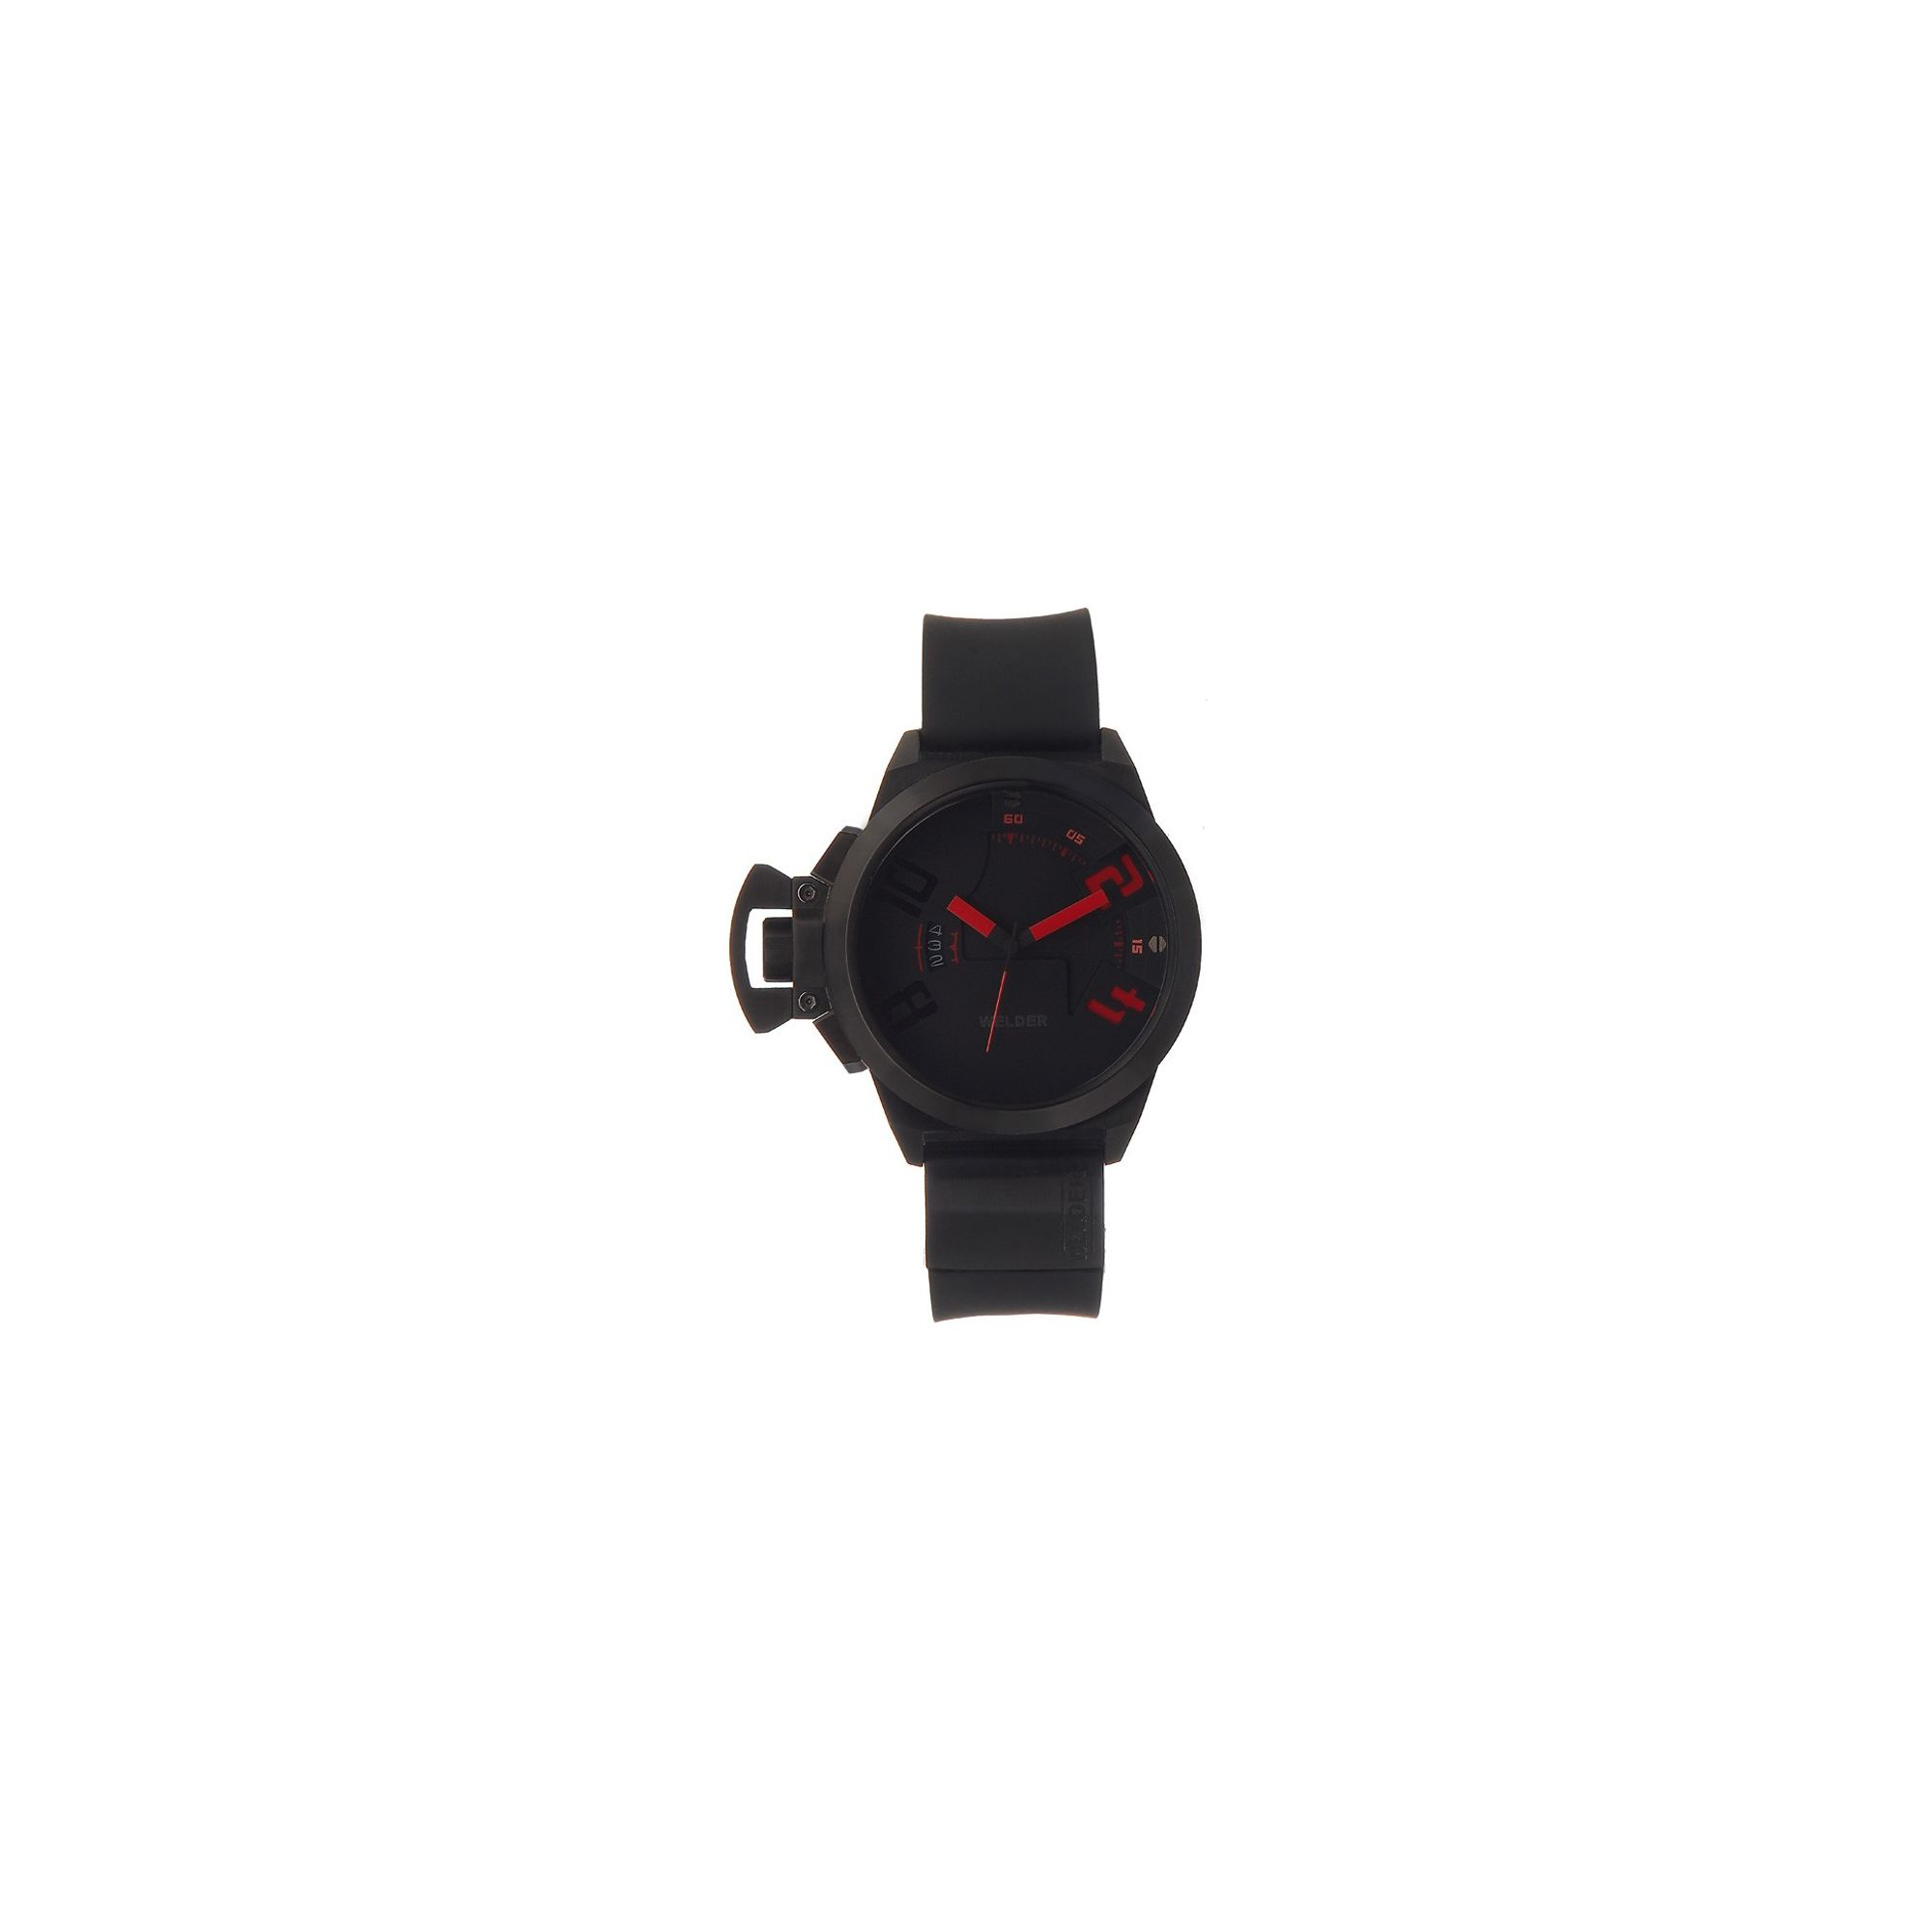 Welder Gents Black Dial Black Rubber Strap Watch K24-3103 at Tesco Direct